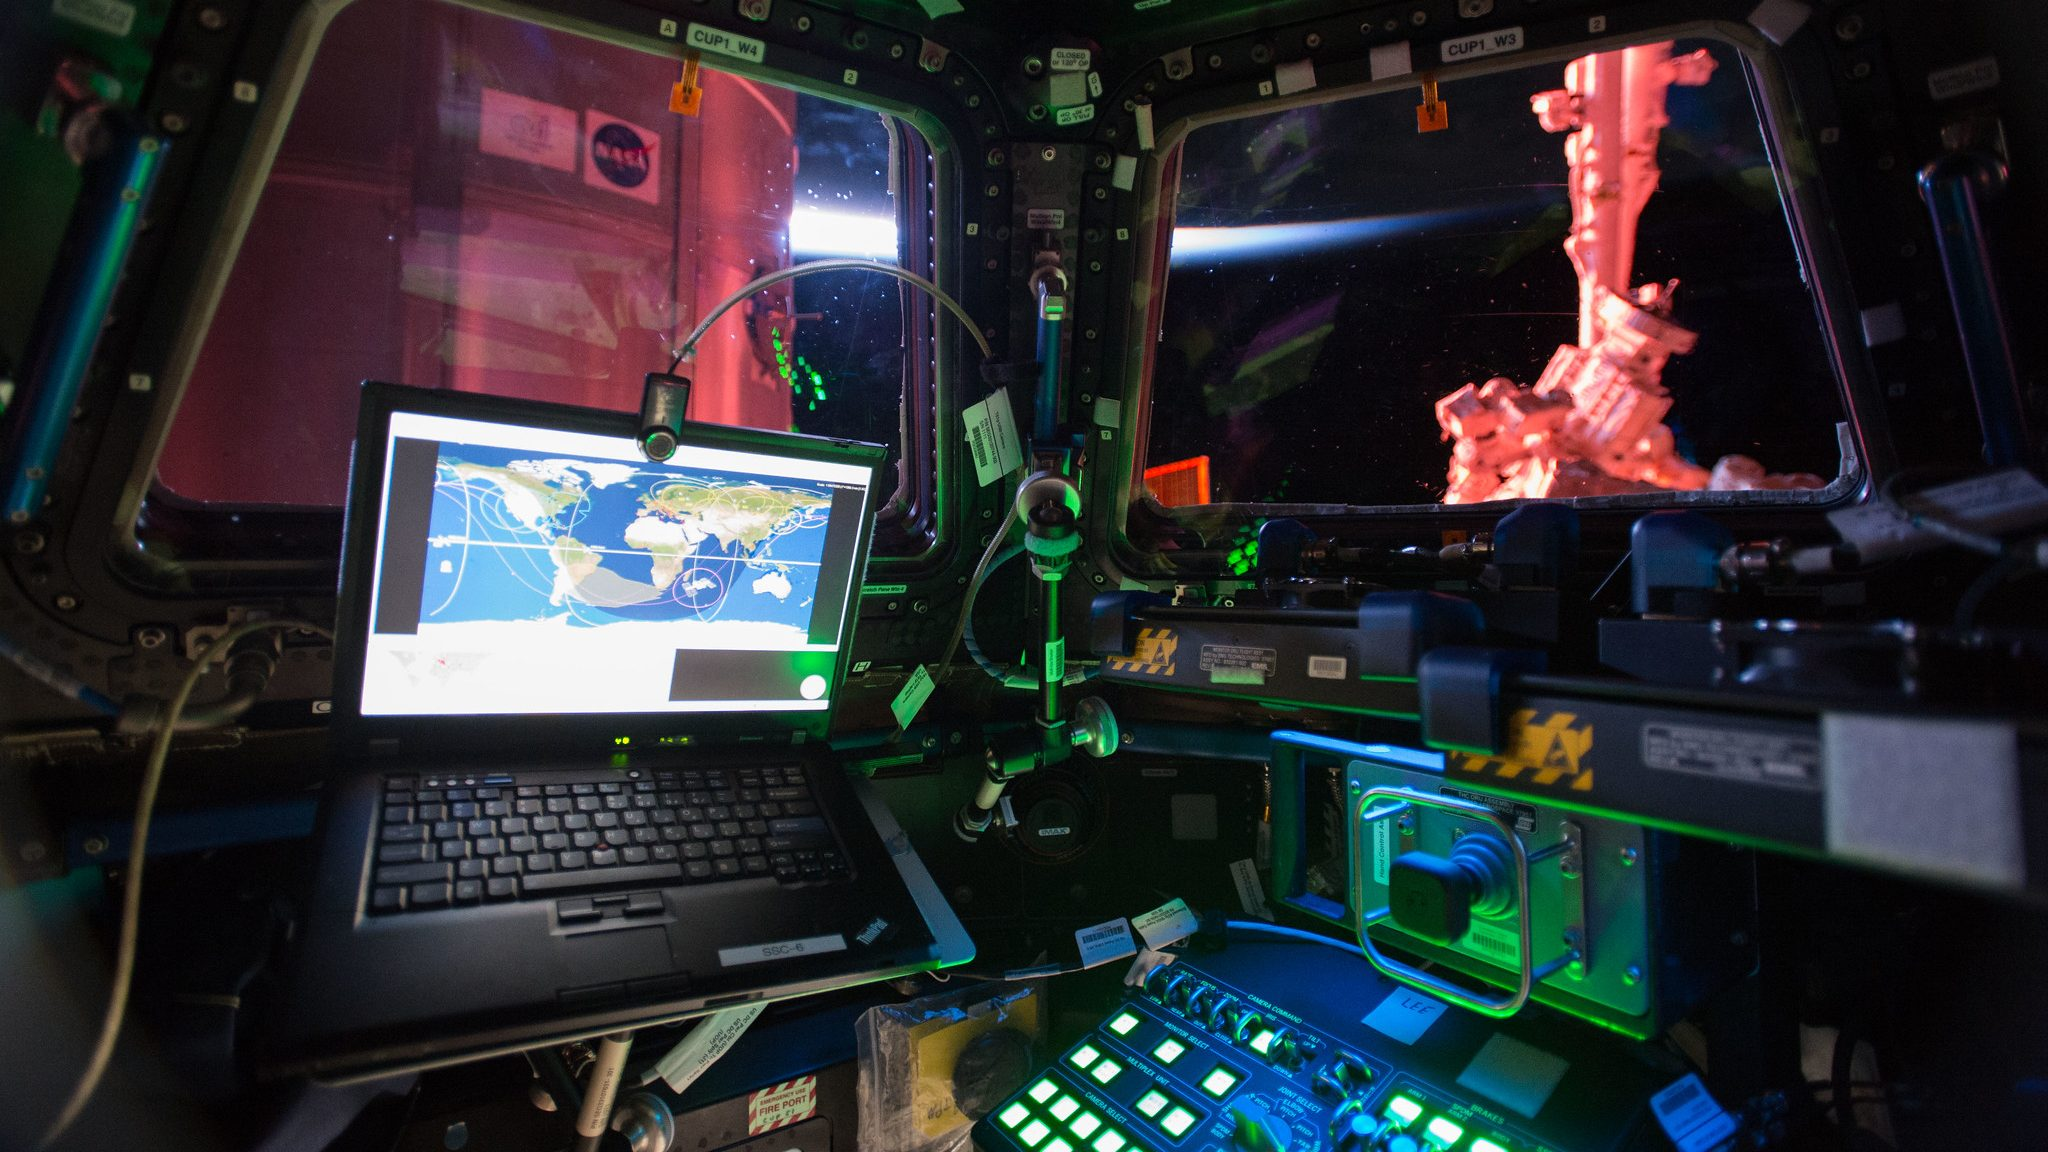 Interior view from the International Space Station cupola bathed in green, blue and red lights.